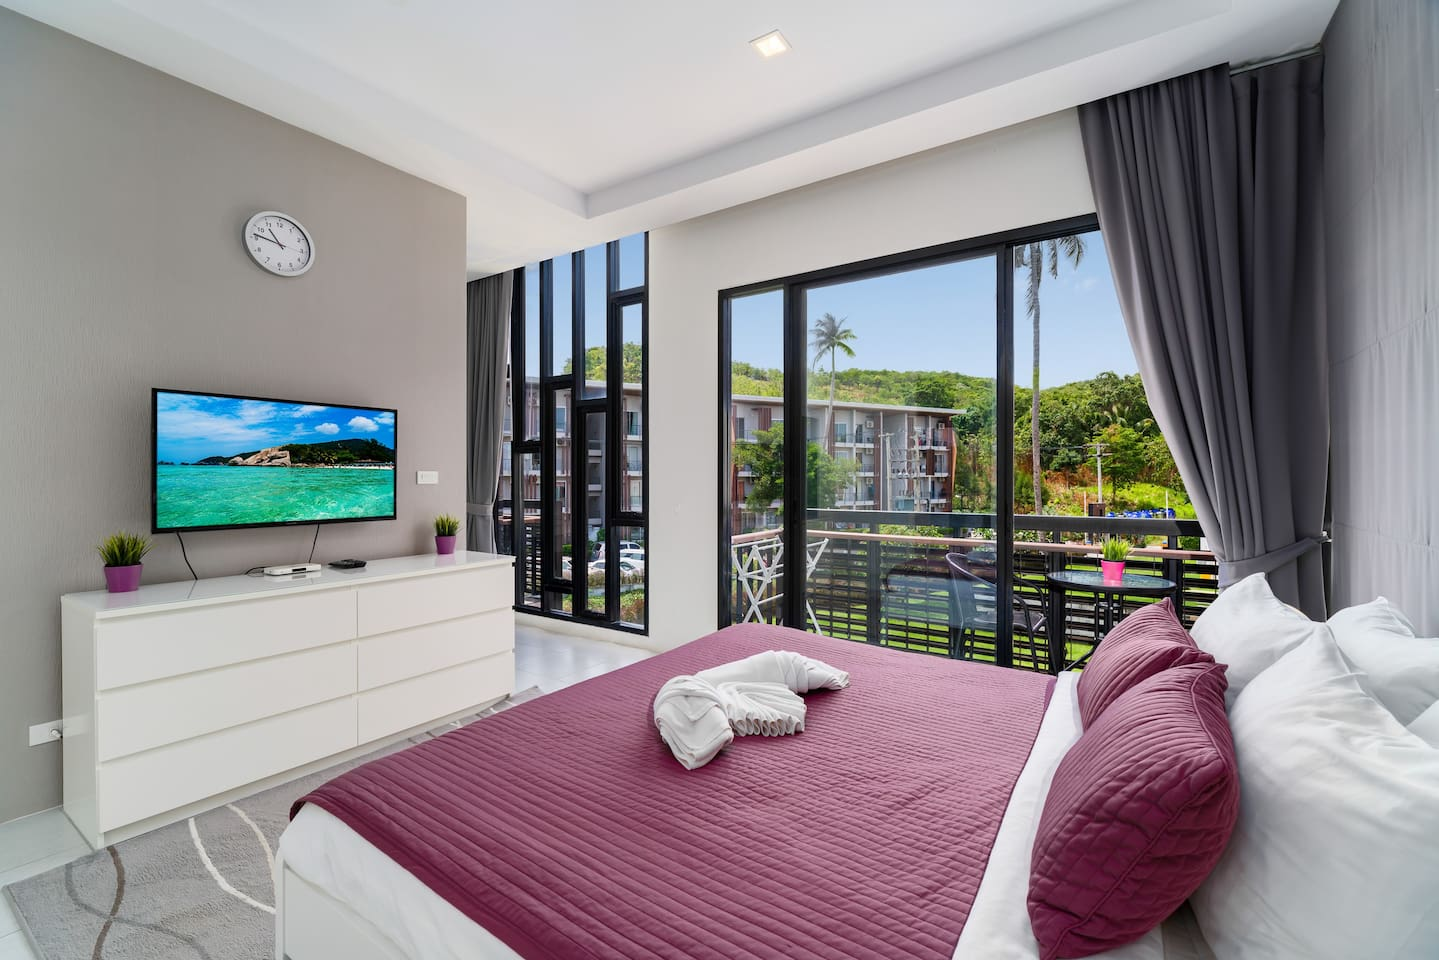 Master bedroom with balcony and private, en-suite bathroom.